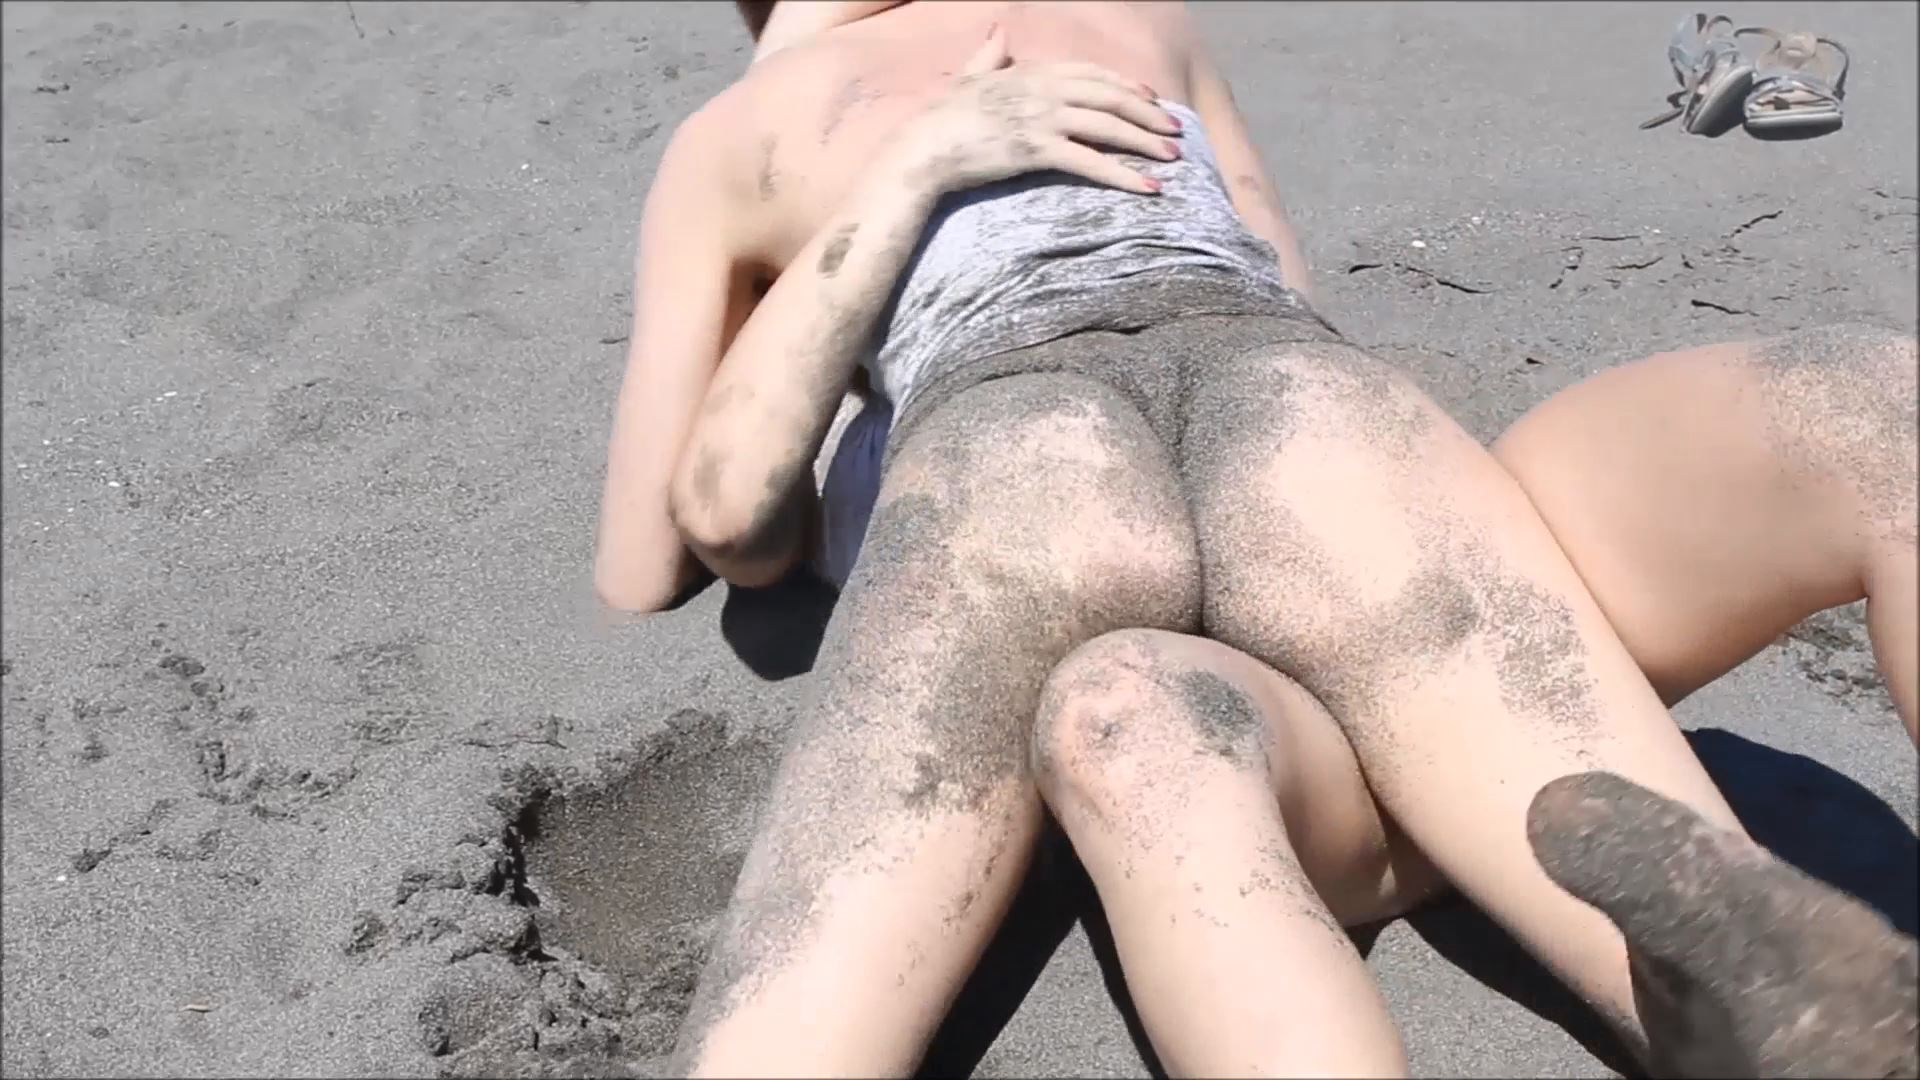 CatBall on the Beach Part 2 - CATBALL CATFIGHT AND SEXFIGHT - FULL HD/1080p/MP4